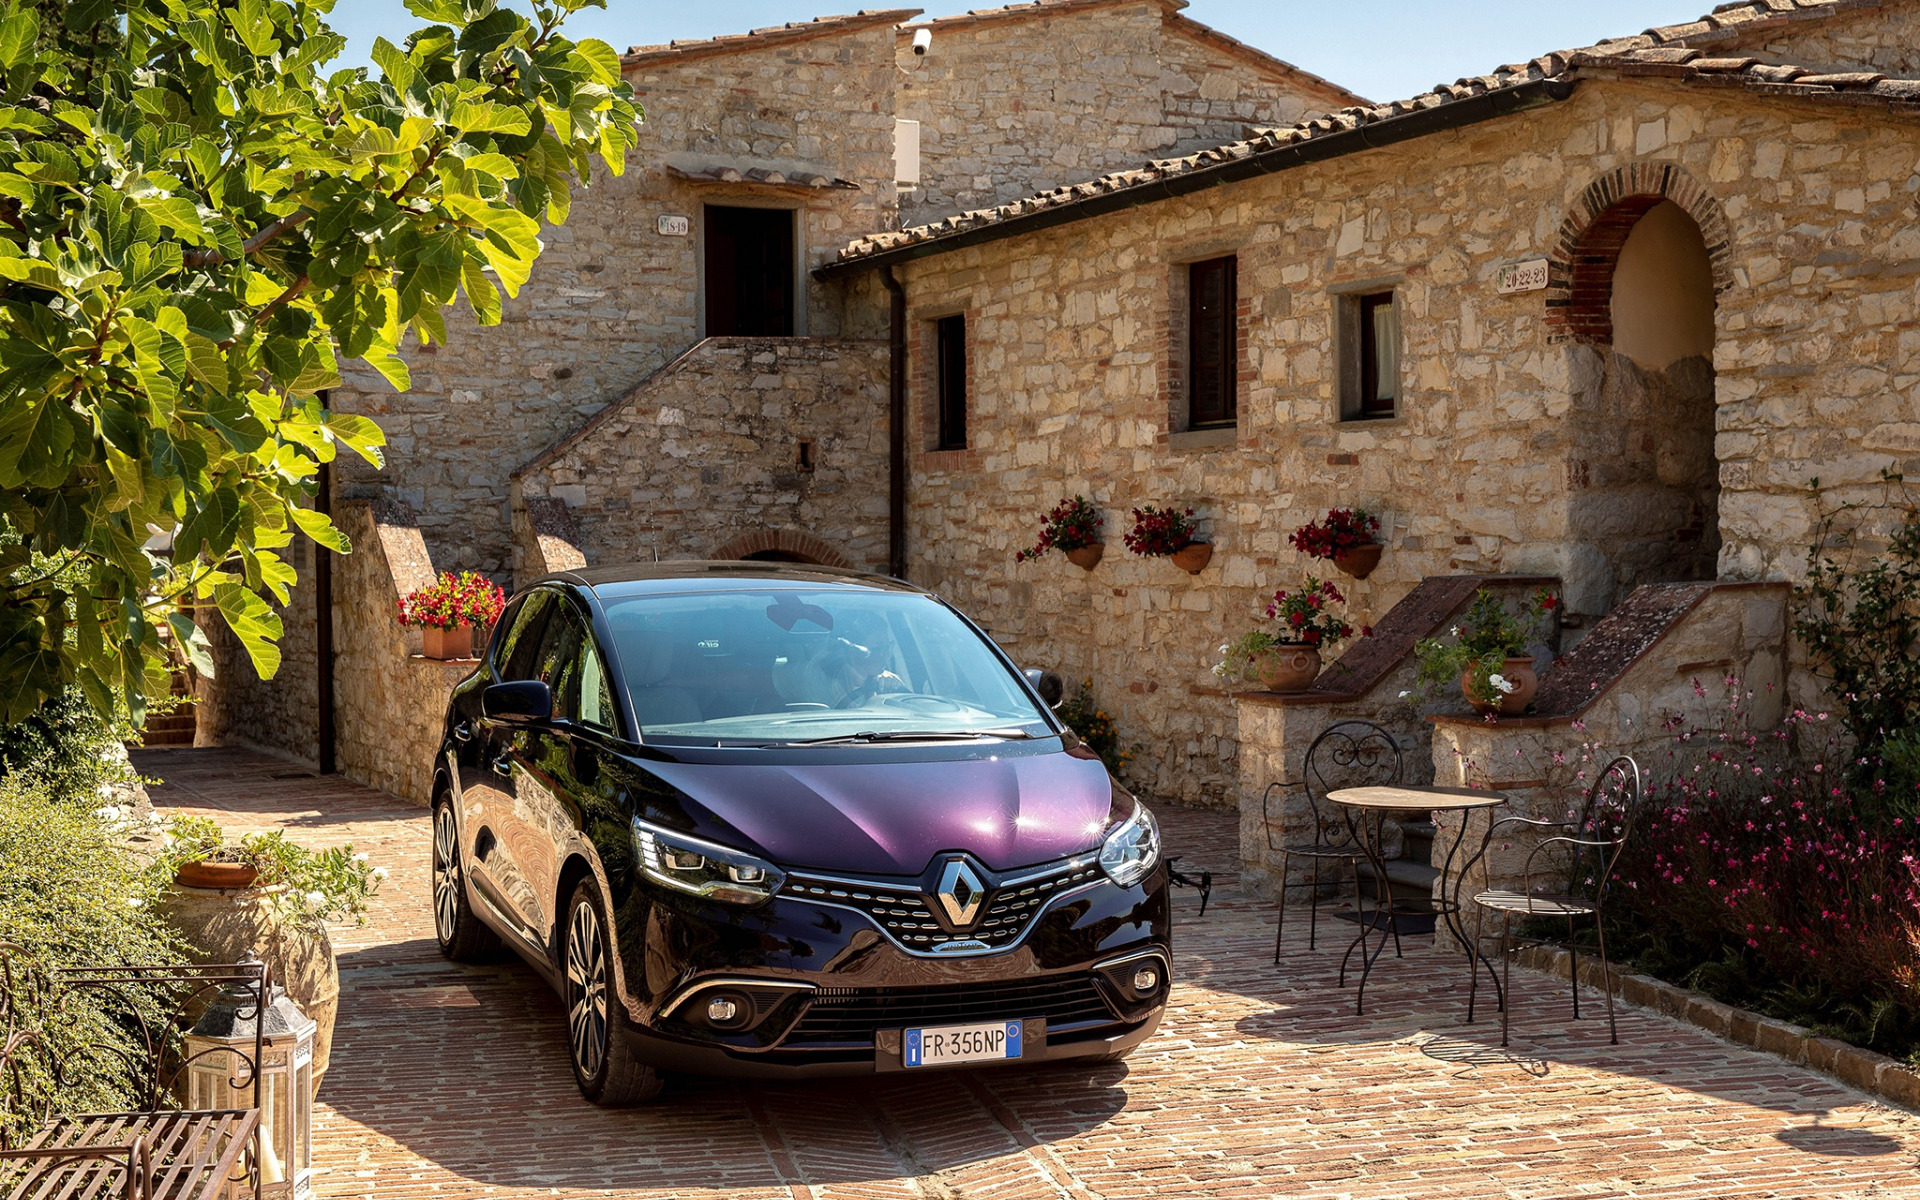 Renault Scenic, Initiale, 2018, purple minivan, new purple Scenic, French cars, Renault